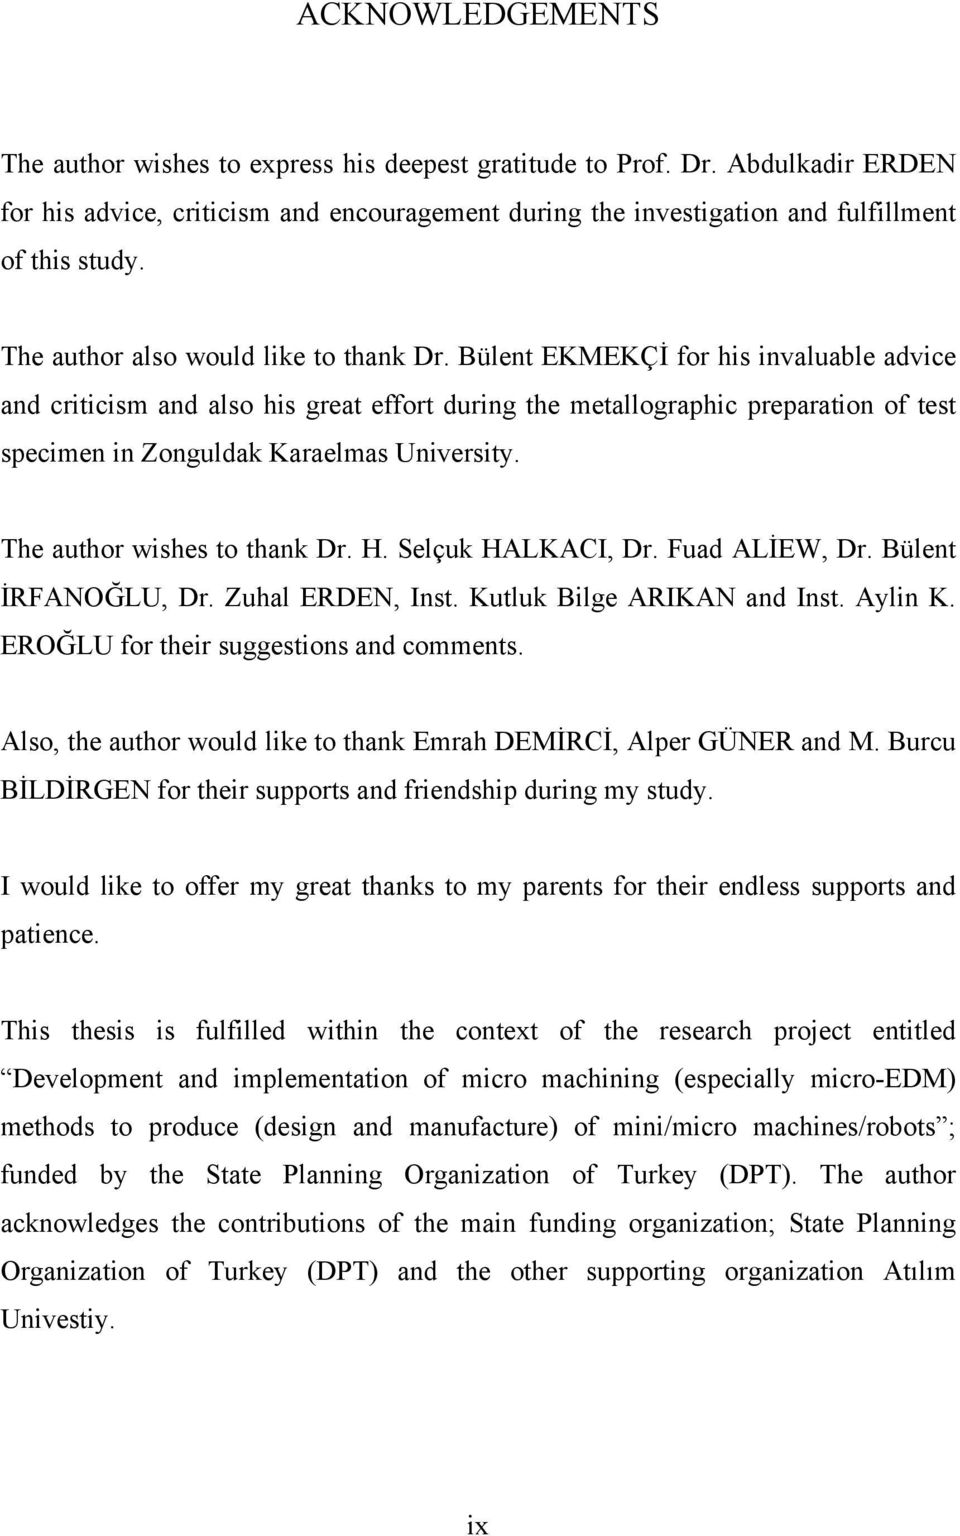 Bülent EKMEKÇİ for his invaluable advice and criticism and also his great effort during the metallographic preparation of test specimen in Zonguldak Karaelmas University.